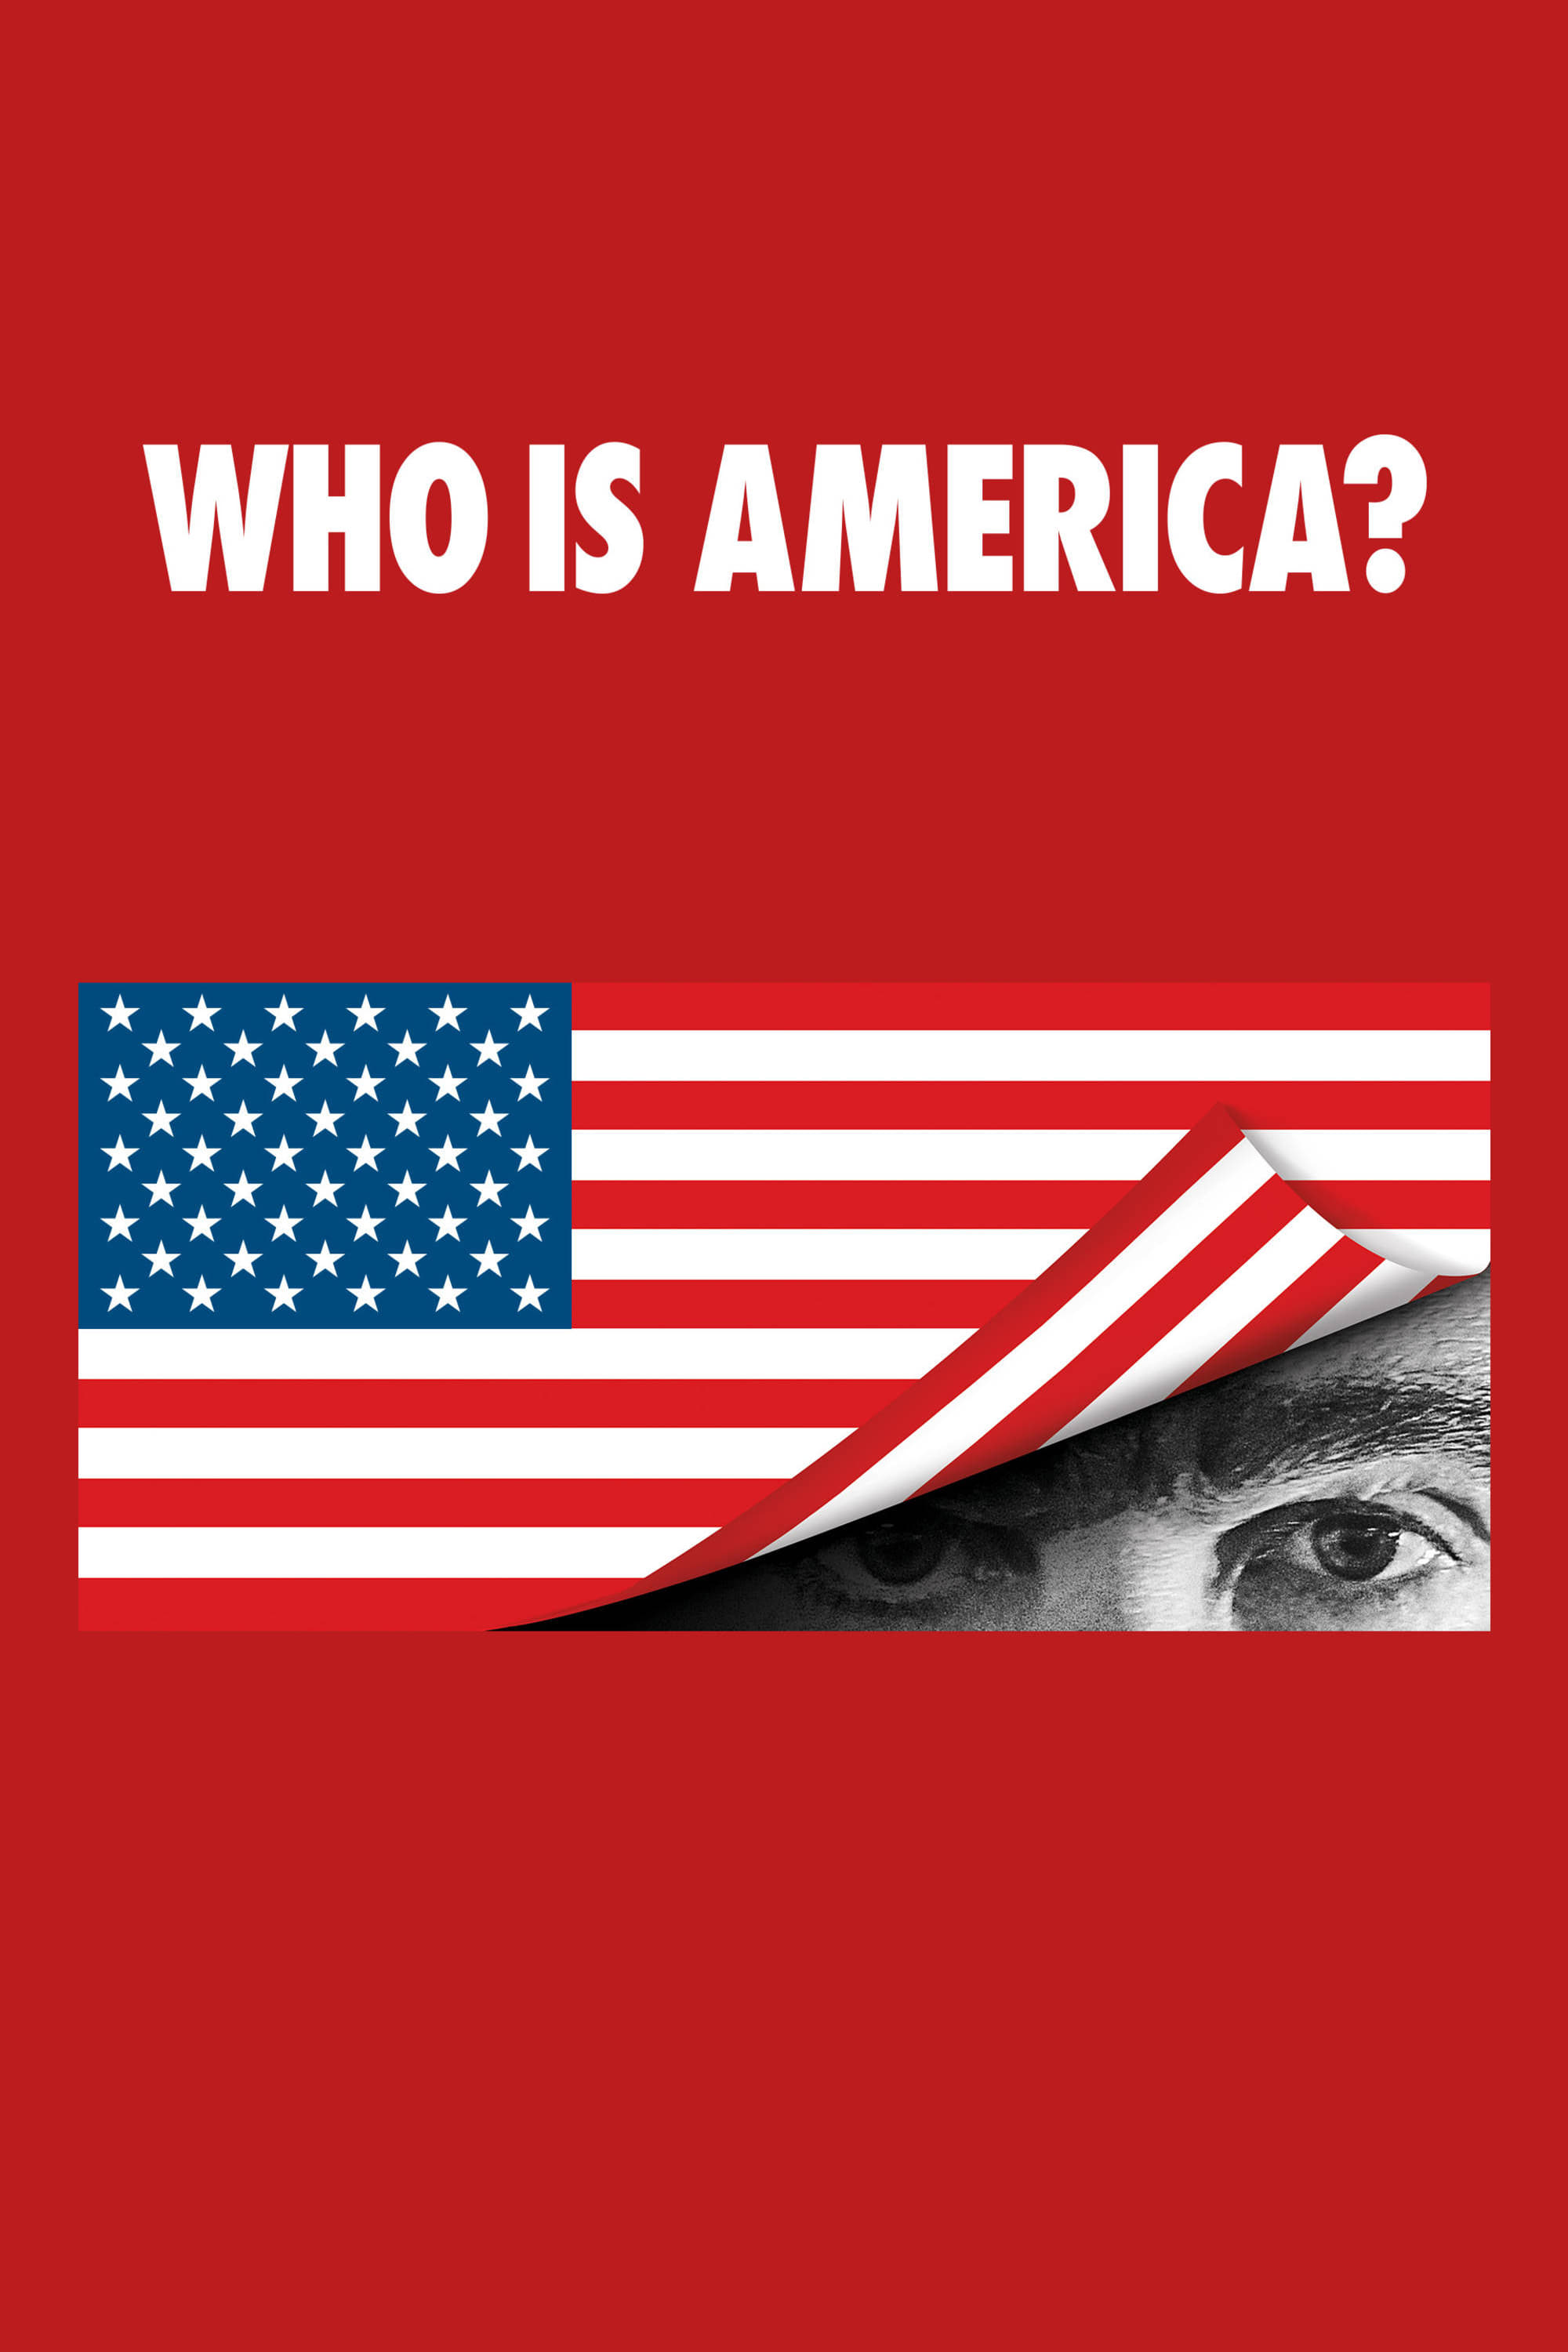 image for Who Is America?